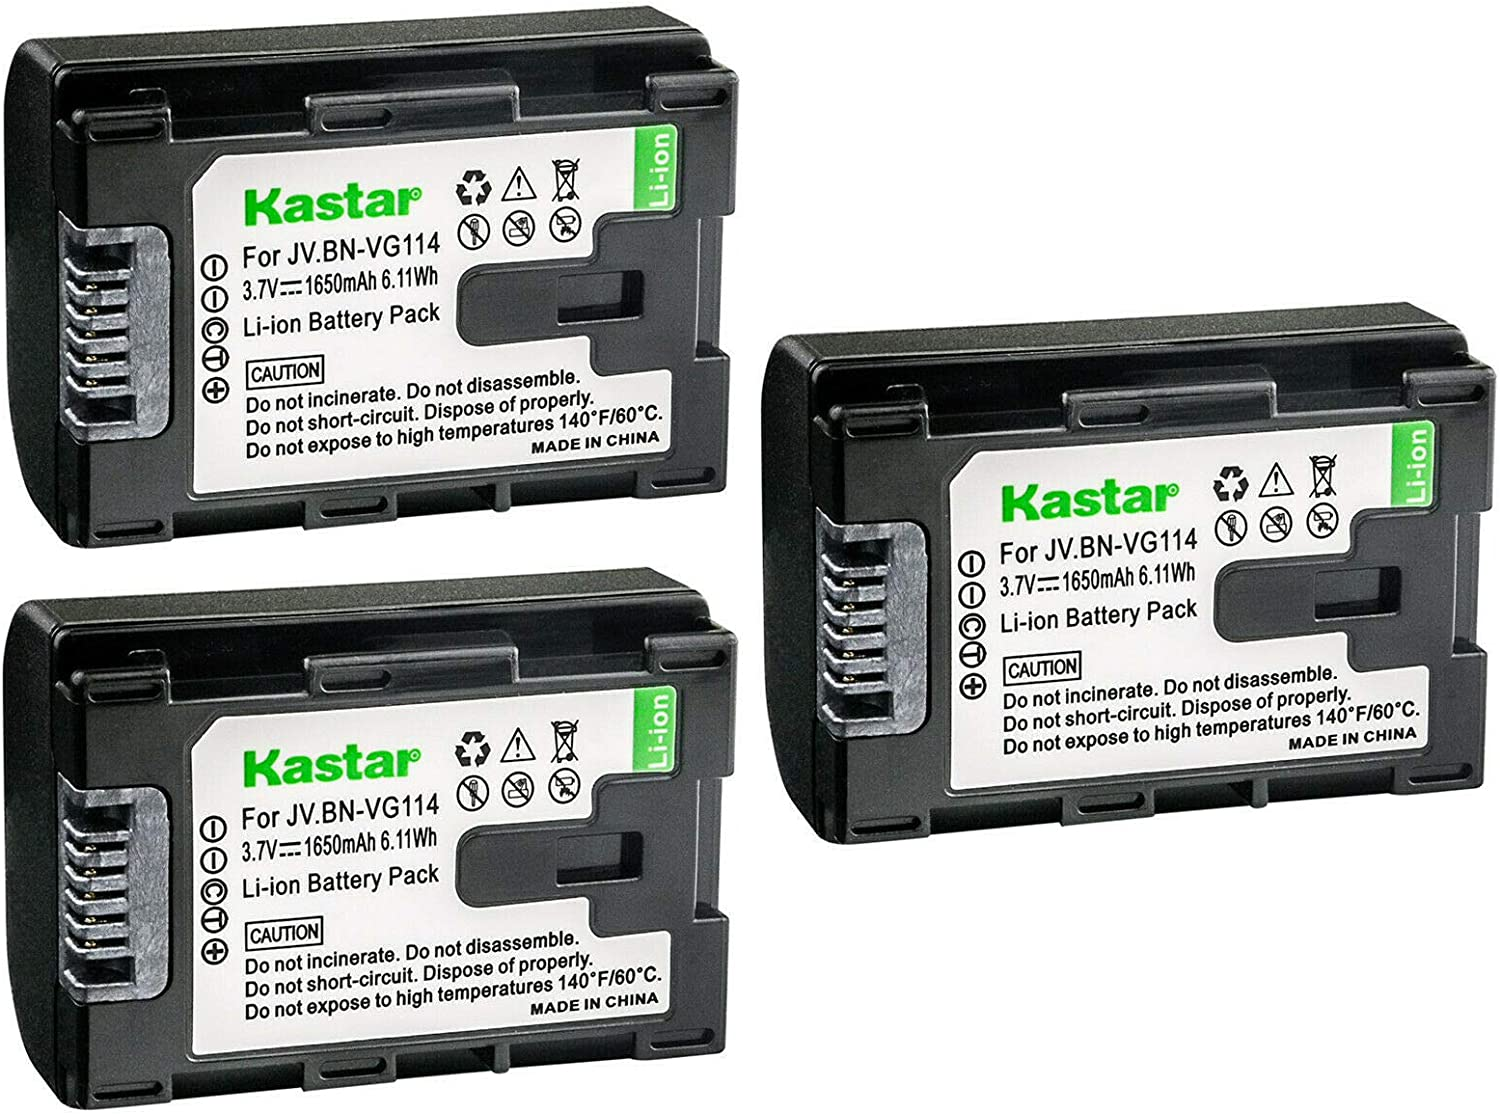 Kastar 3-Pack Battery Replacement National Be super welcome products for BN BN-VG107AC JVC BN-VG107